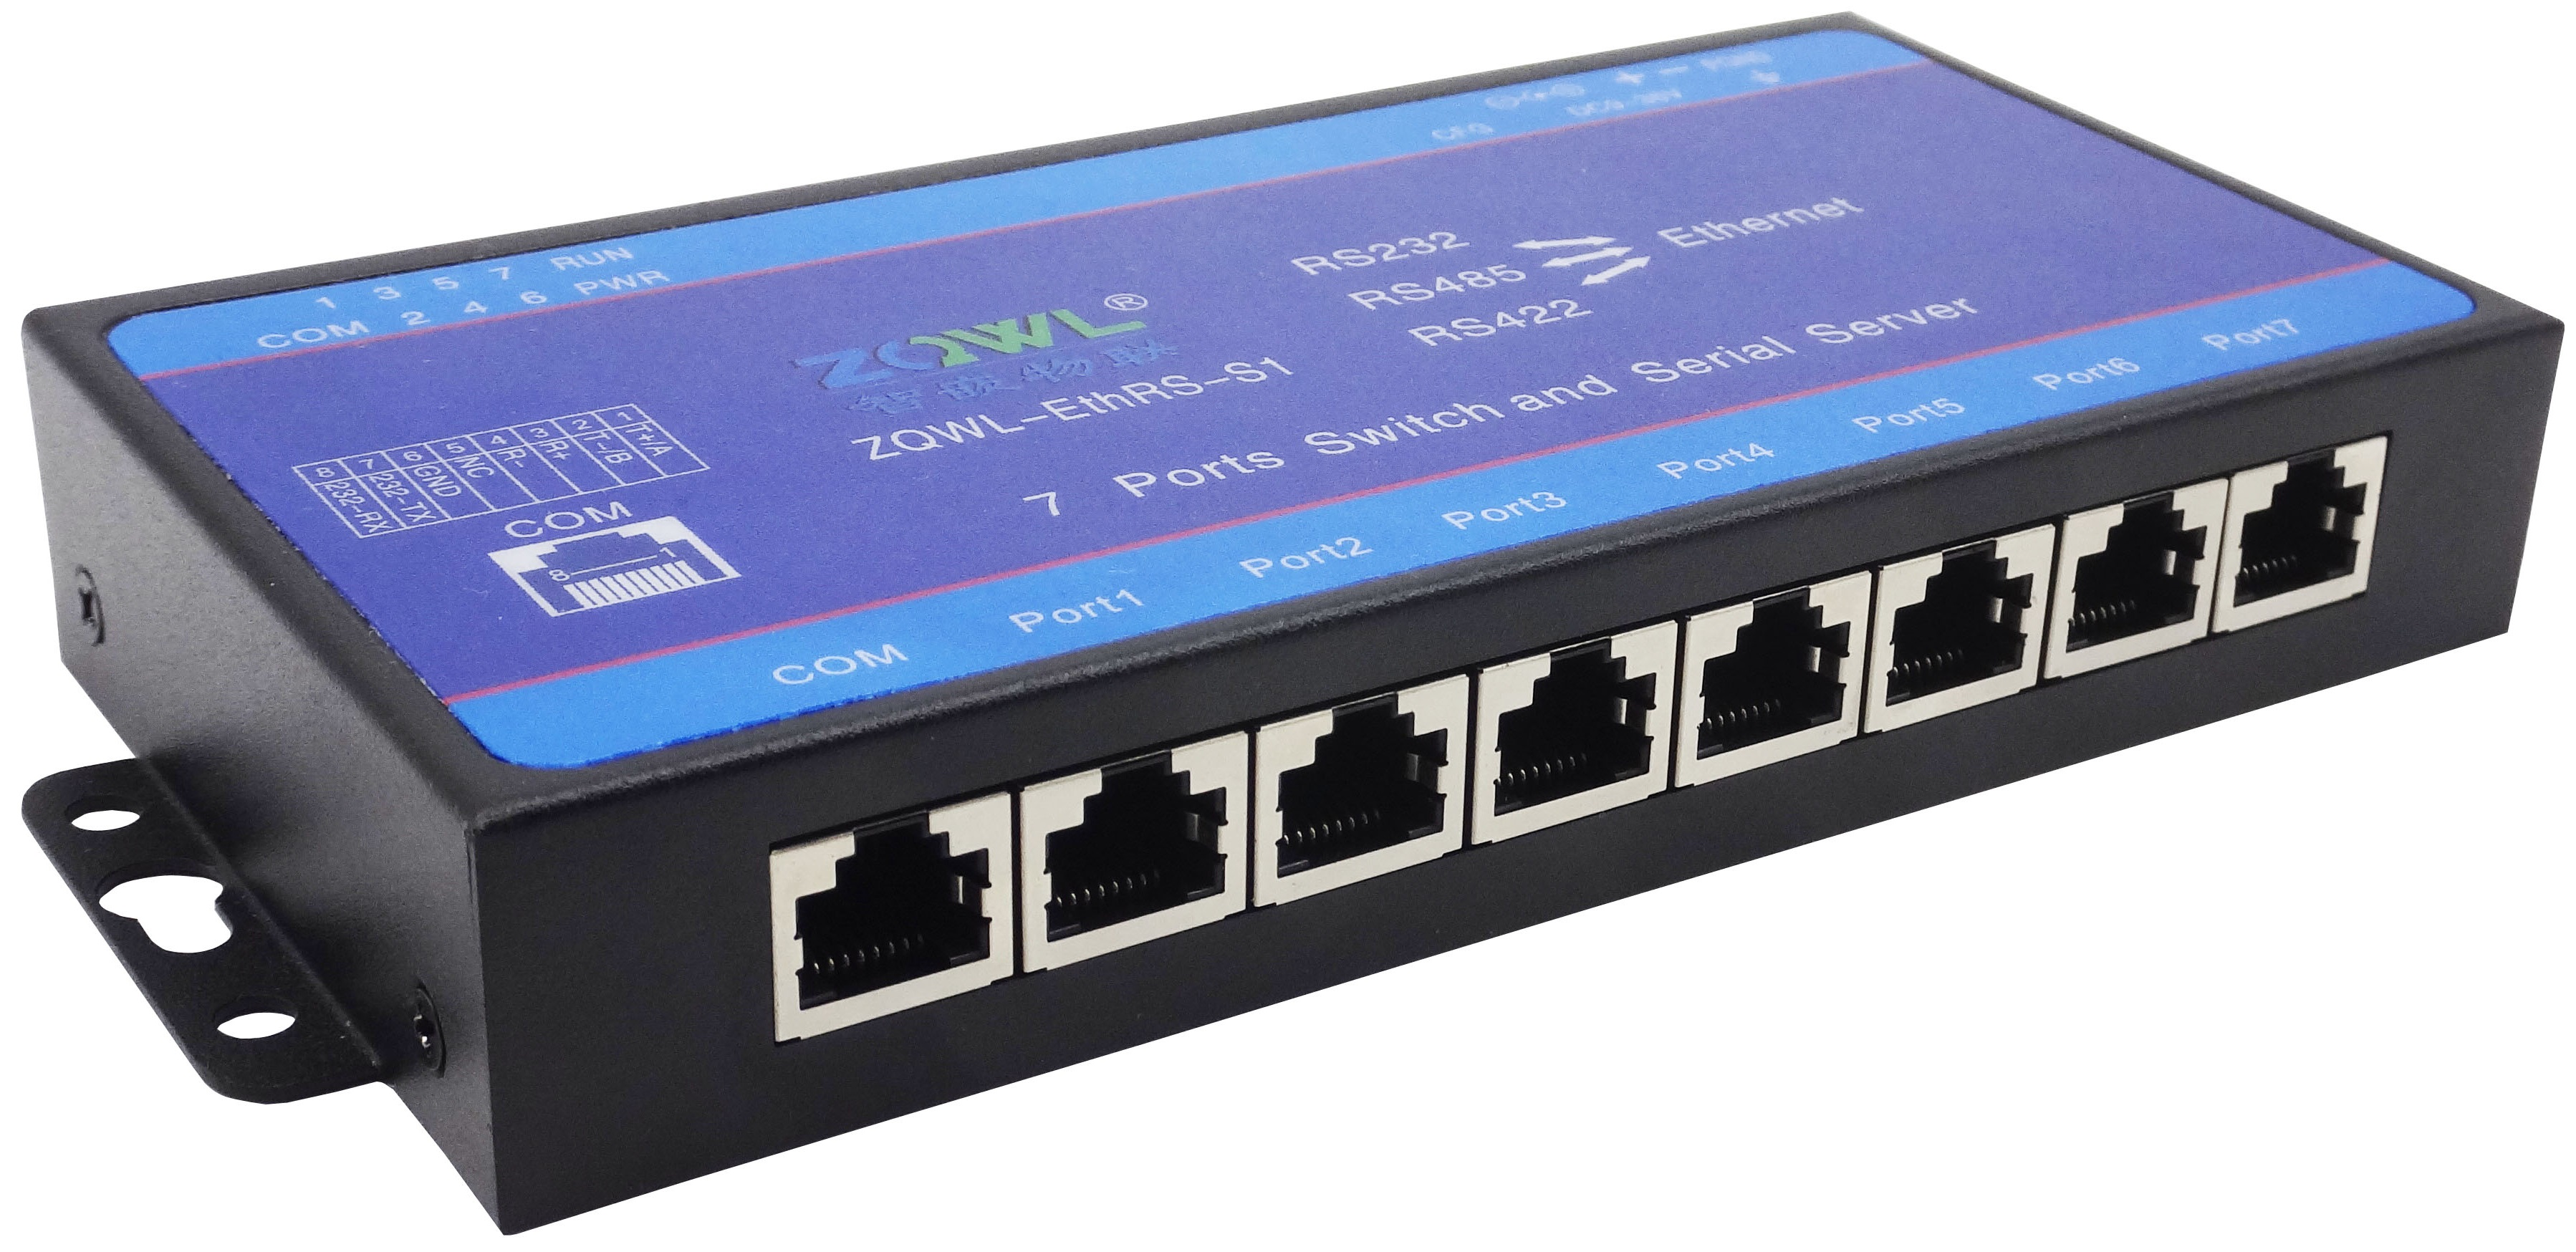 Serial Port Server/Serial Port to Ethernet Network to Serial Port/7 Port Switch/Modbus TCP/RTUSerial Port Server/Serial Port to Ethernet Network to Serial Port/7 Port Switch/Modbus TCP/RTU